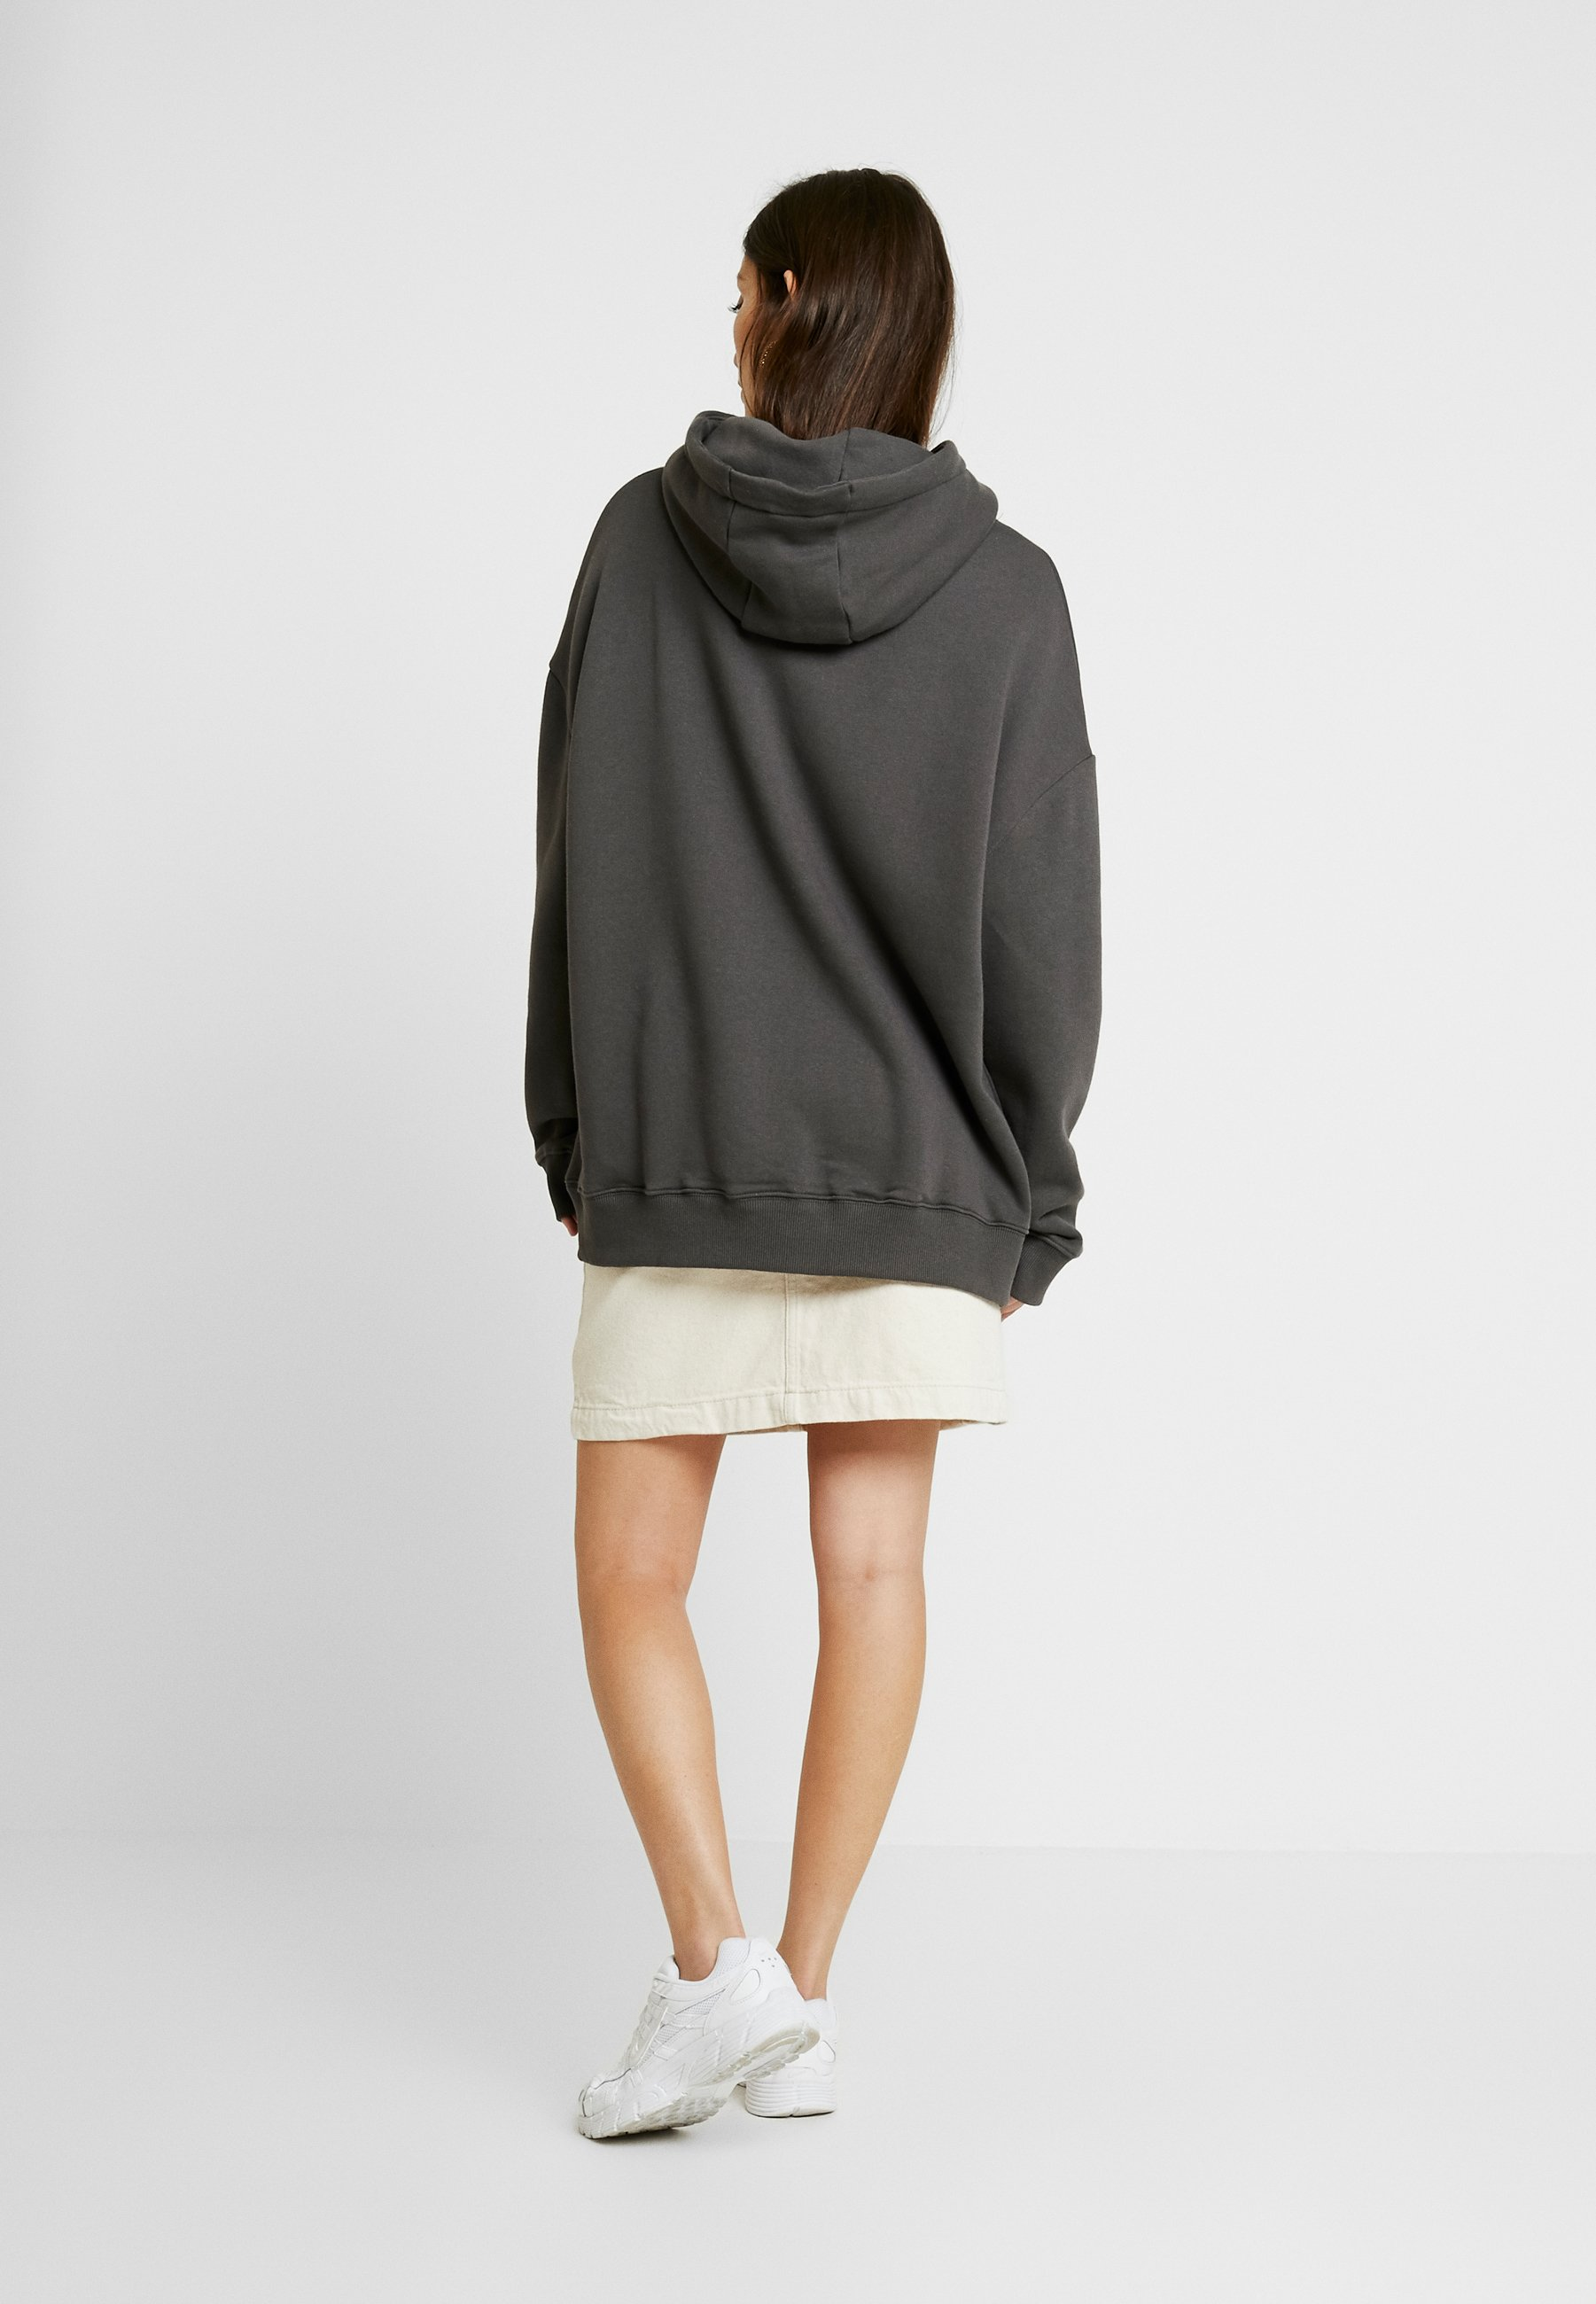 Cappuccio Oversized By Nly Nelly Black Con Off HoodieFelpa N8nZOkX0wP